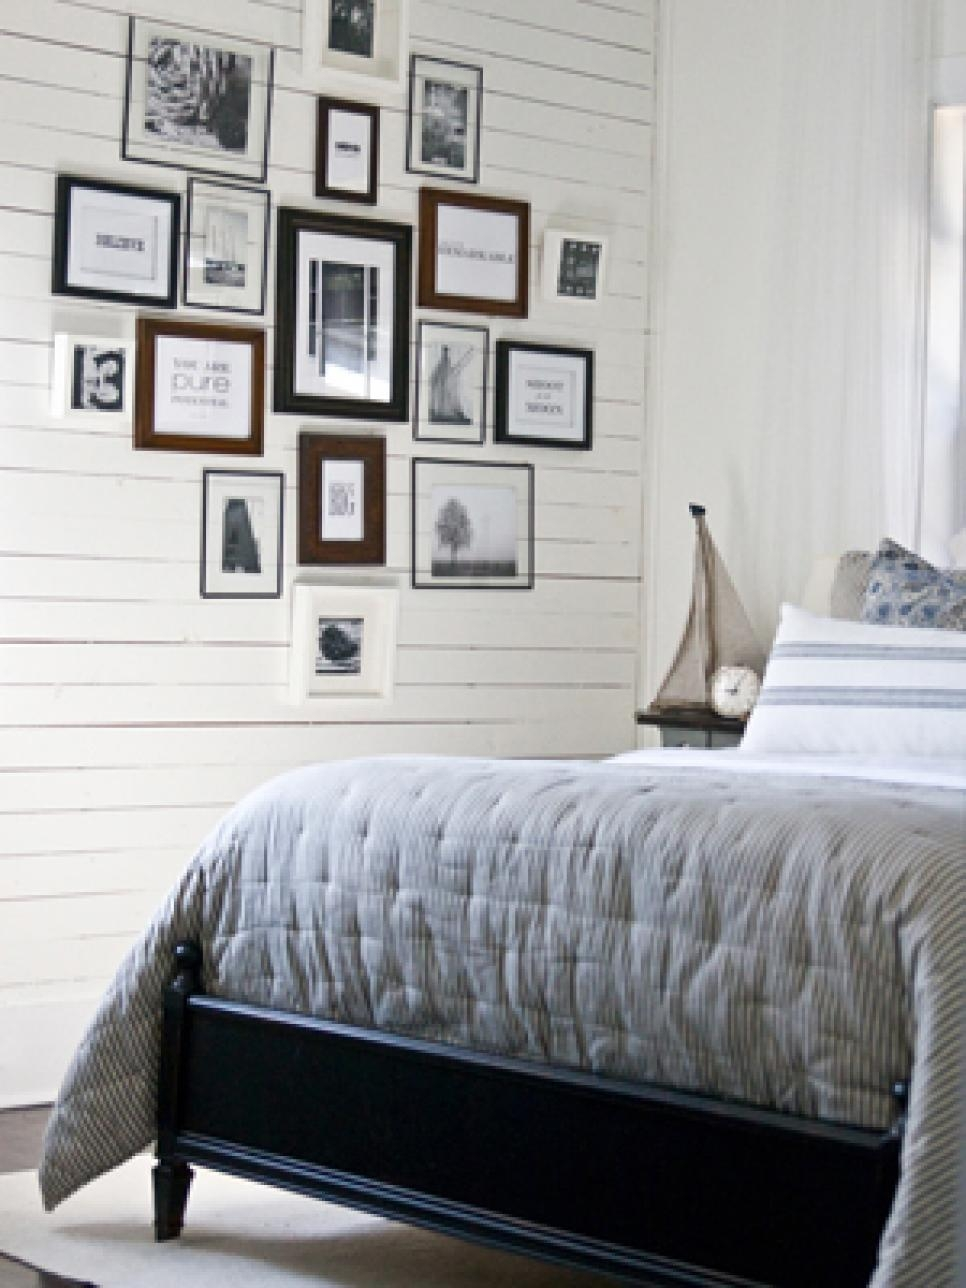 10 Ways To Display Bedroom Frames | Hgtv In Bedroom Framed Wall Art (View 2 of 20)